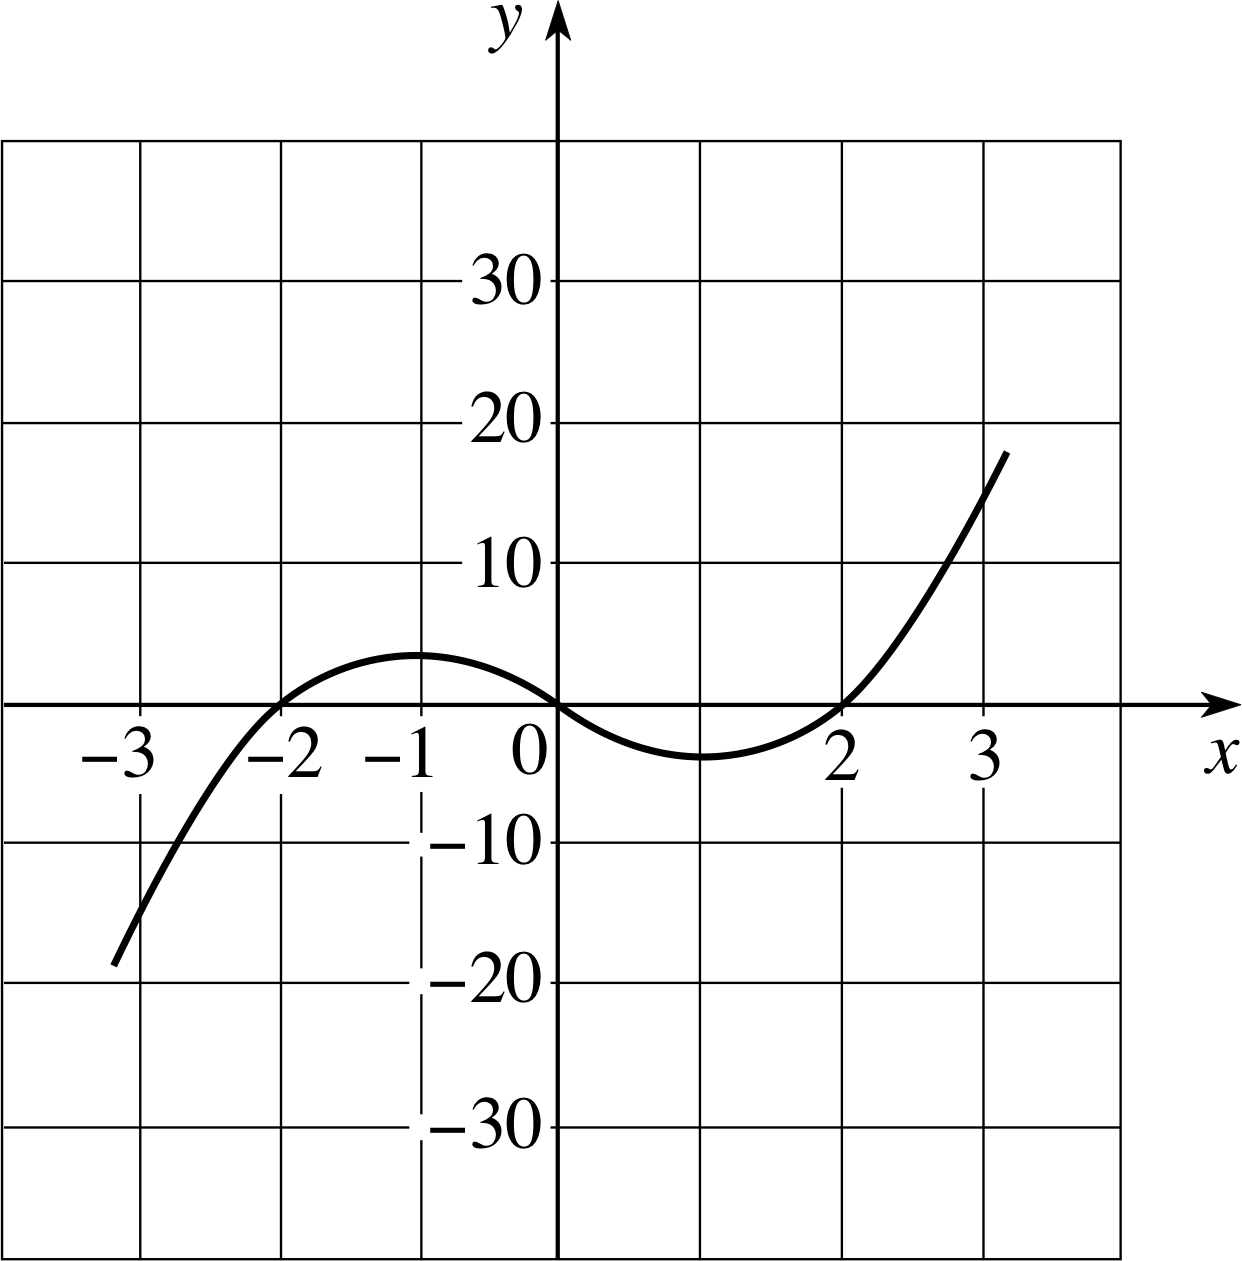 Cubic Equation Graph Figure 9 The cubic function g